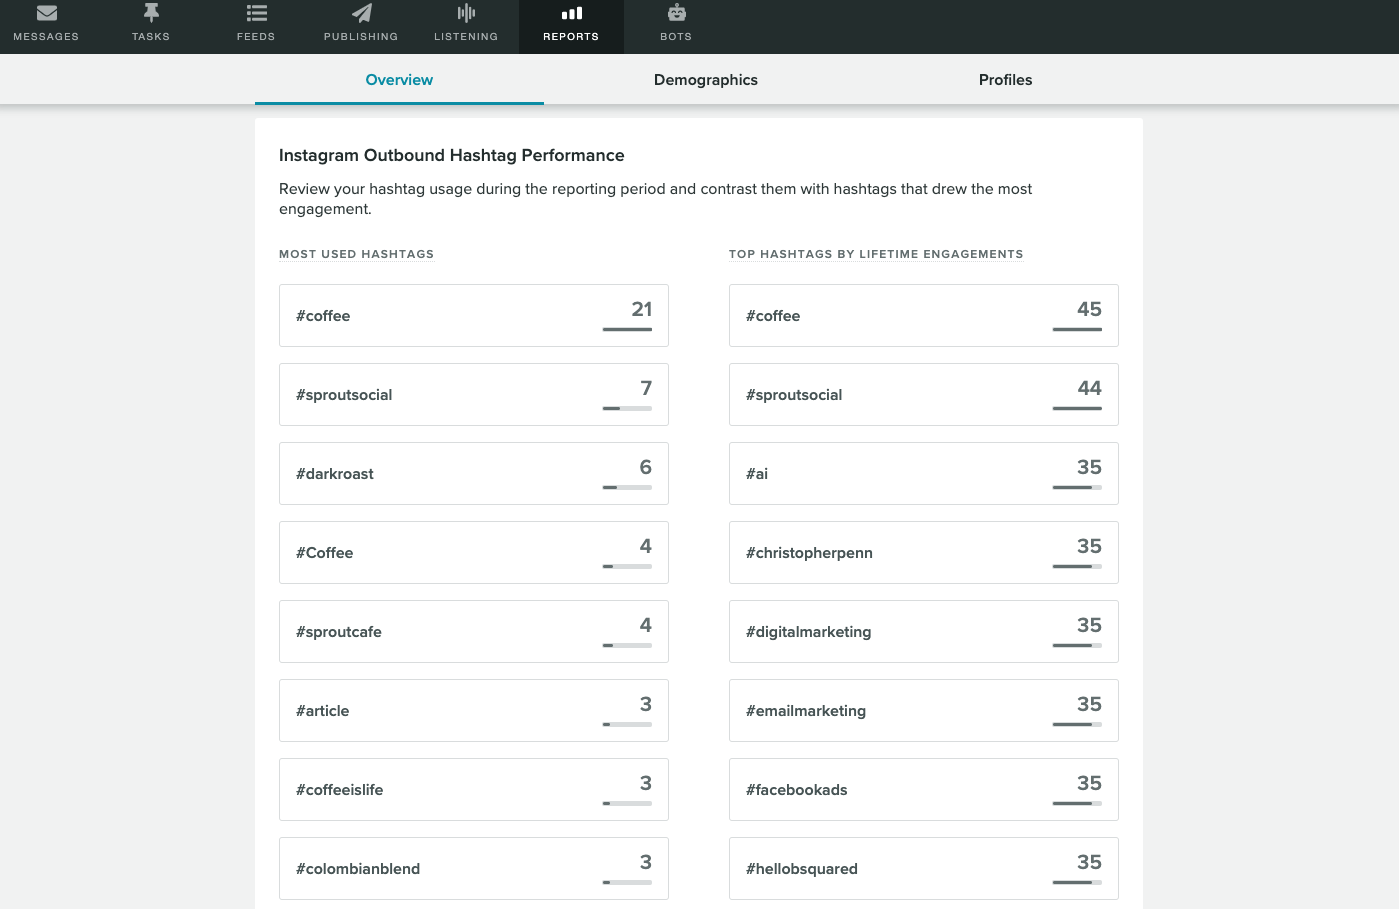 Sprouts trend report can clue you in on which hashtags on Instagram are gaining the most traction